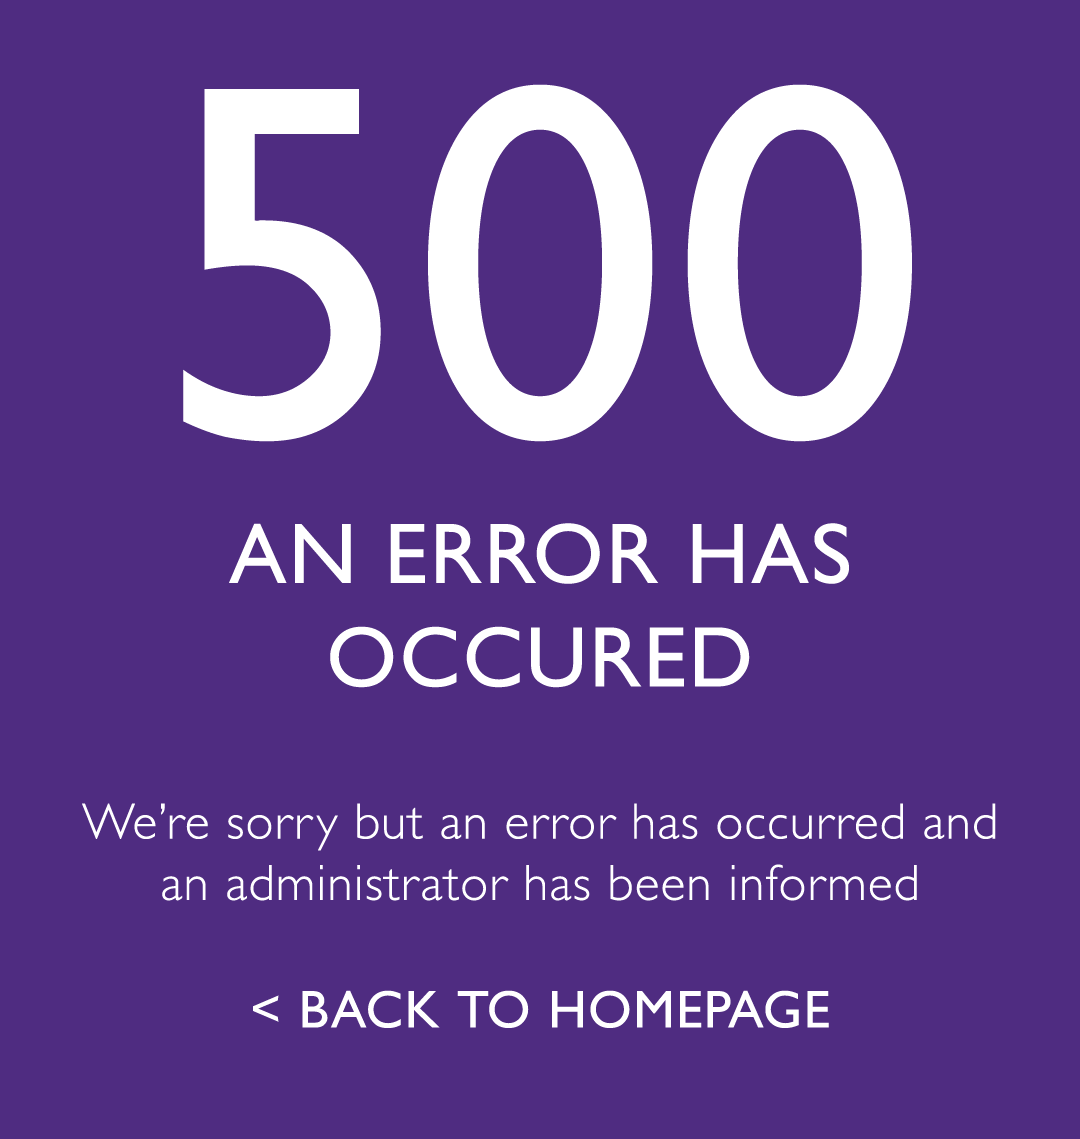 500 - An error has occured